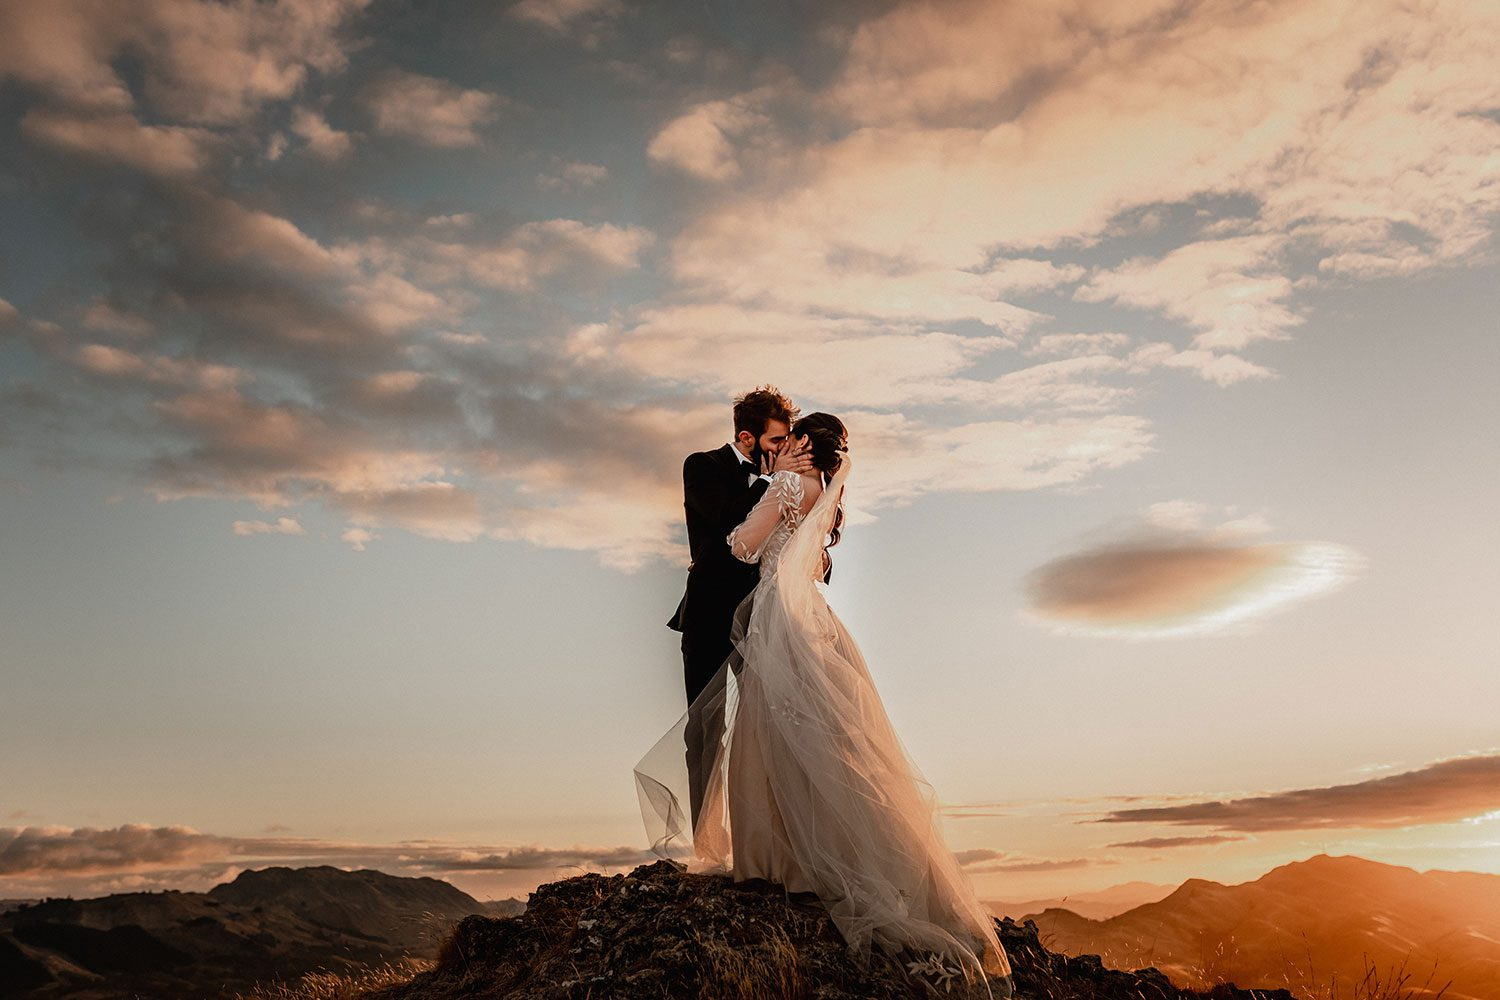 Bride wearing bespoke designer wedding dress by Vinka Bridal Boutique NZ, adorned with delicate applique lace and puffed sleeves - embrace on hill